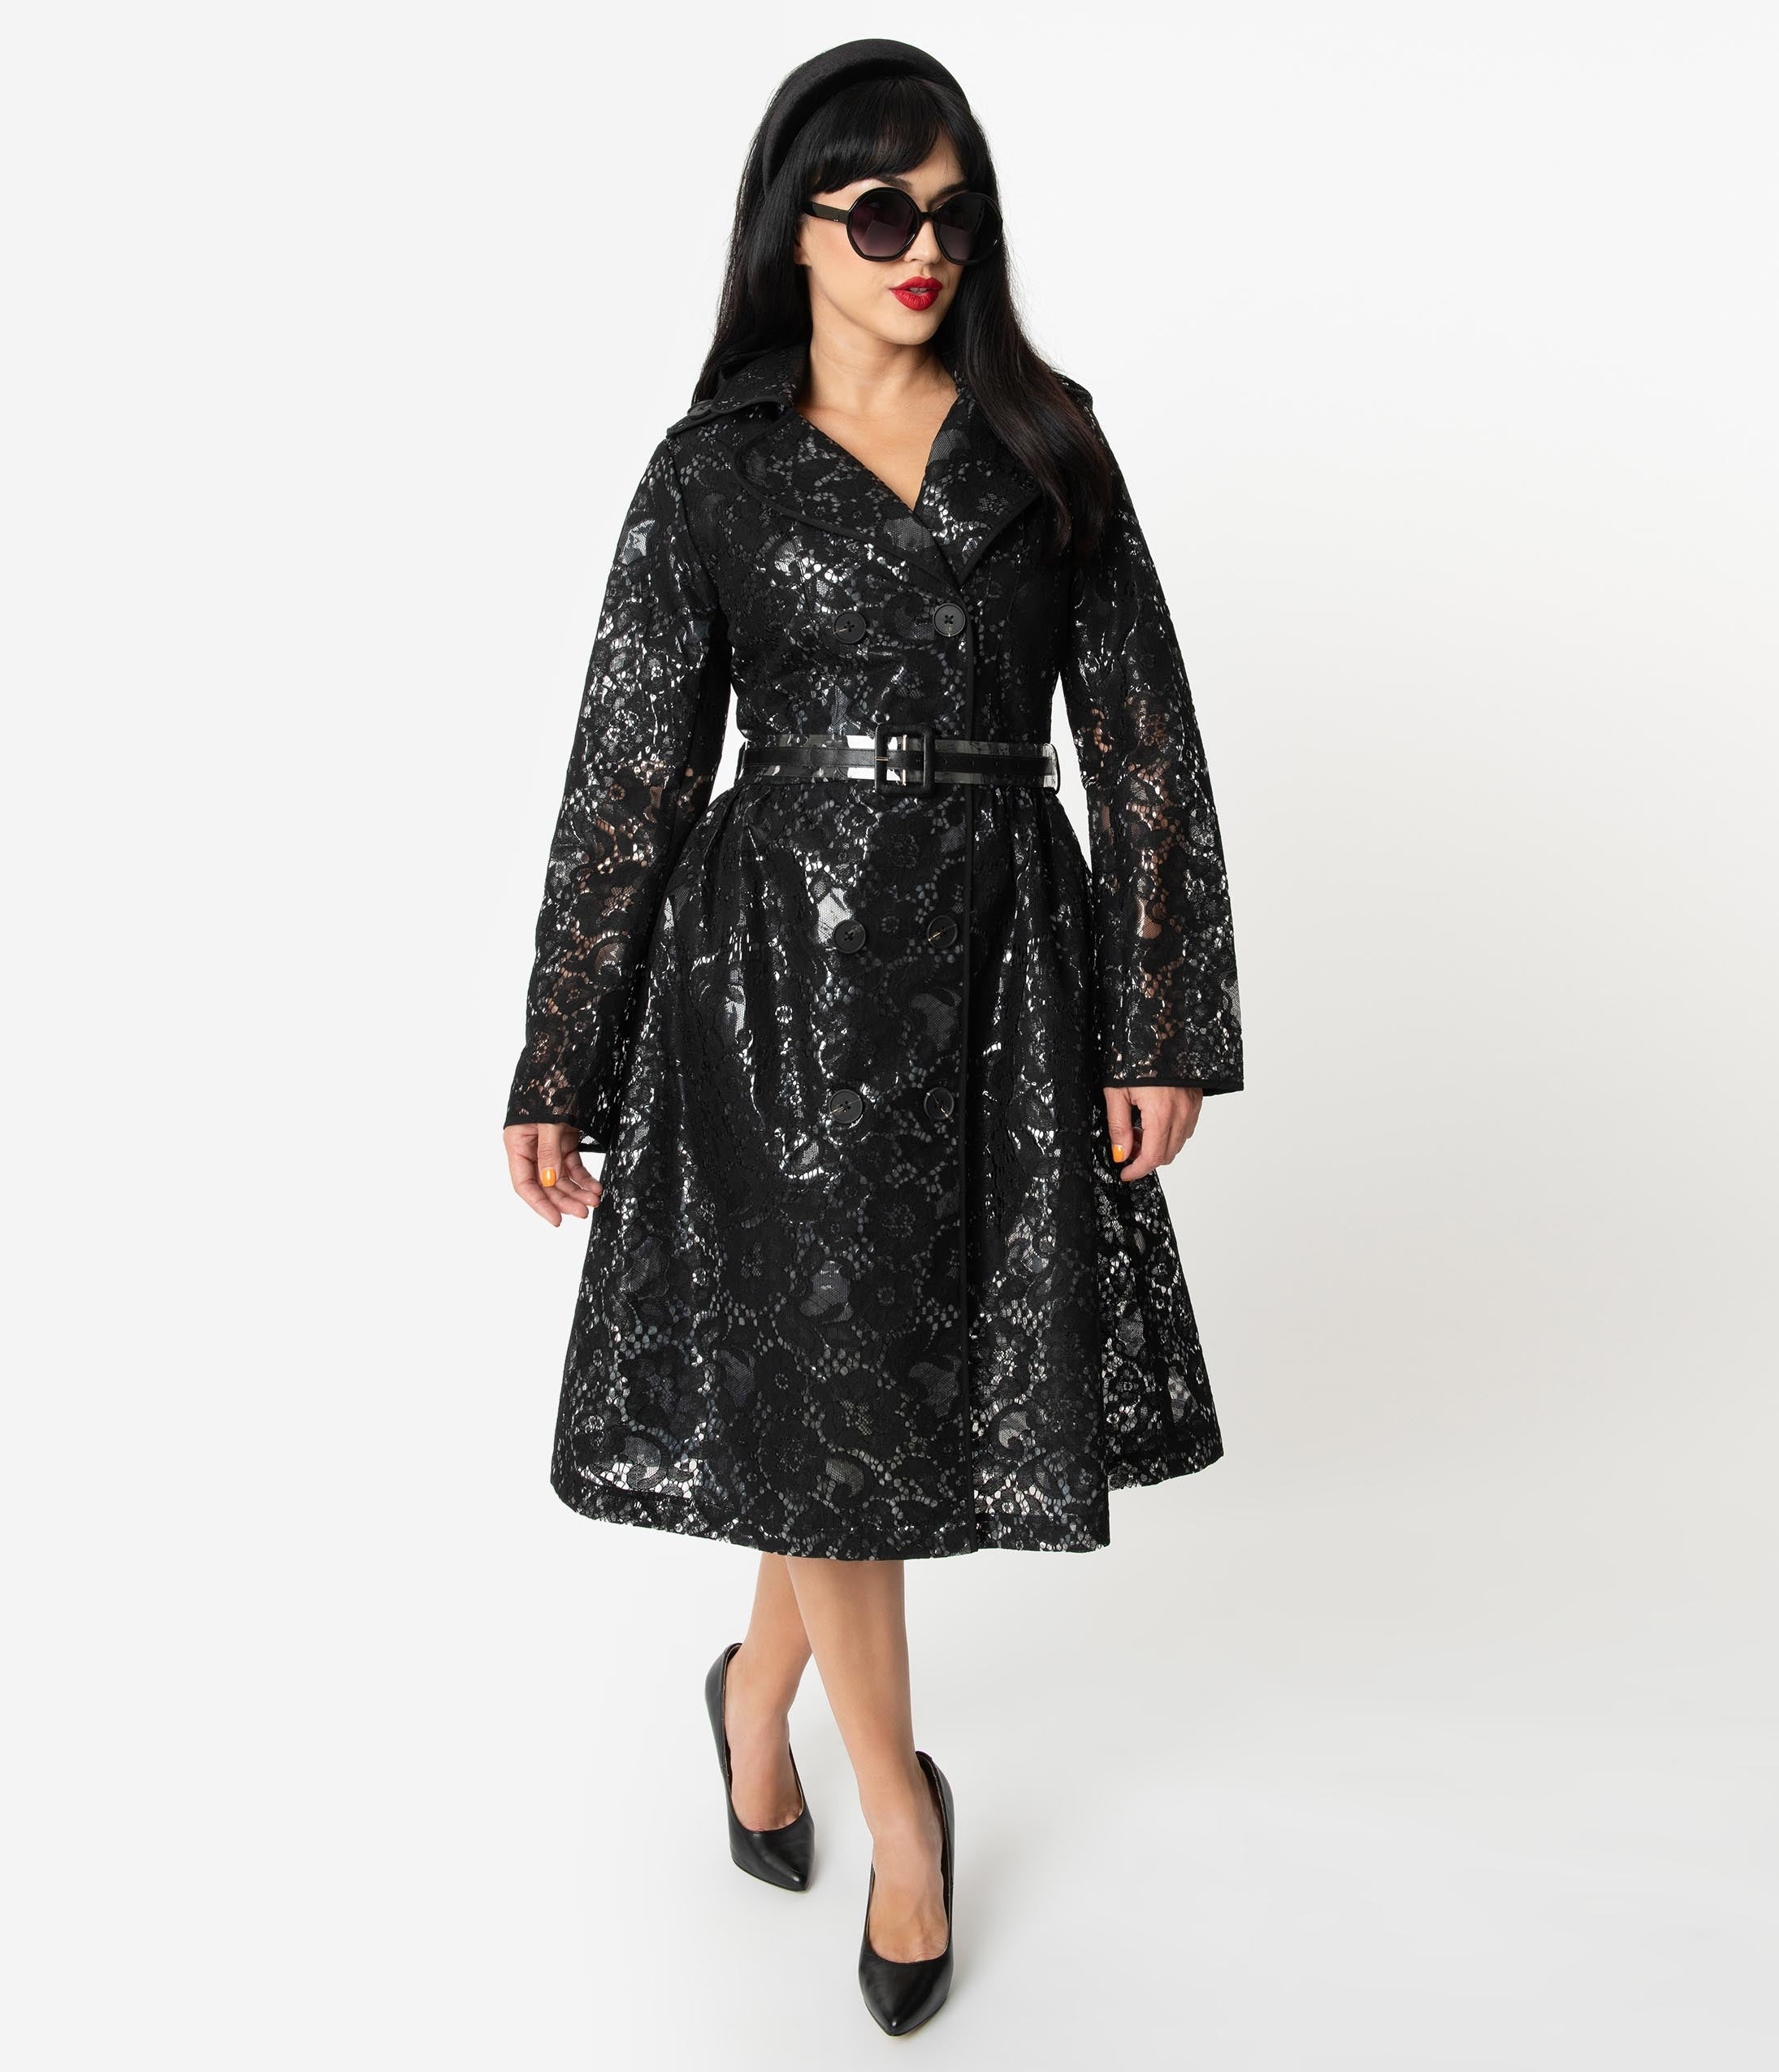 1960s Coats and Jackets Retro Style Black Lace  Vinyl Double-Breasted Long Raincoat $165.00 AT vintagedancer.com